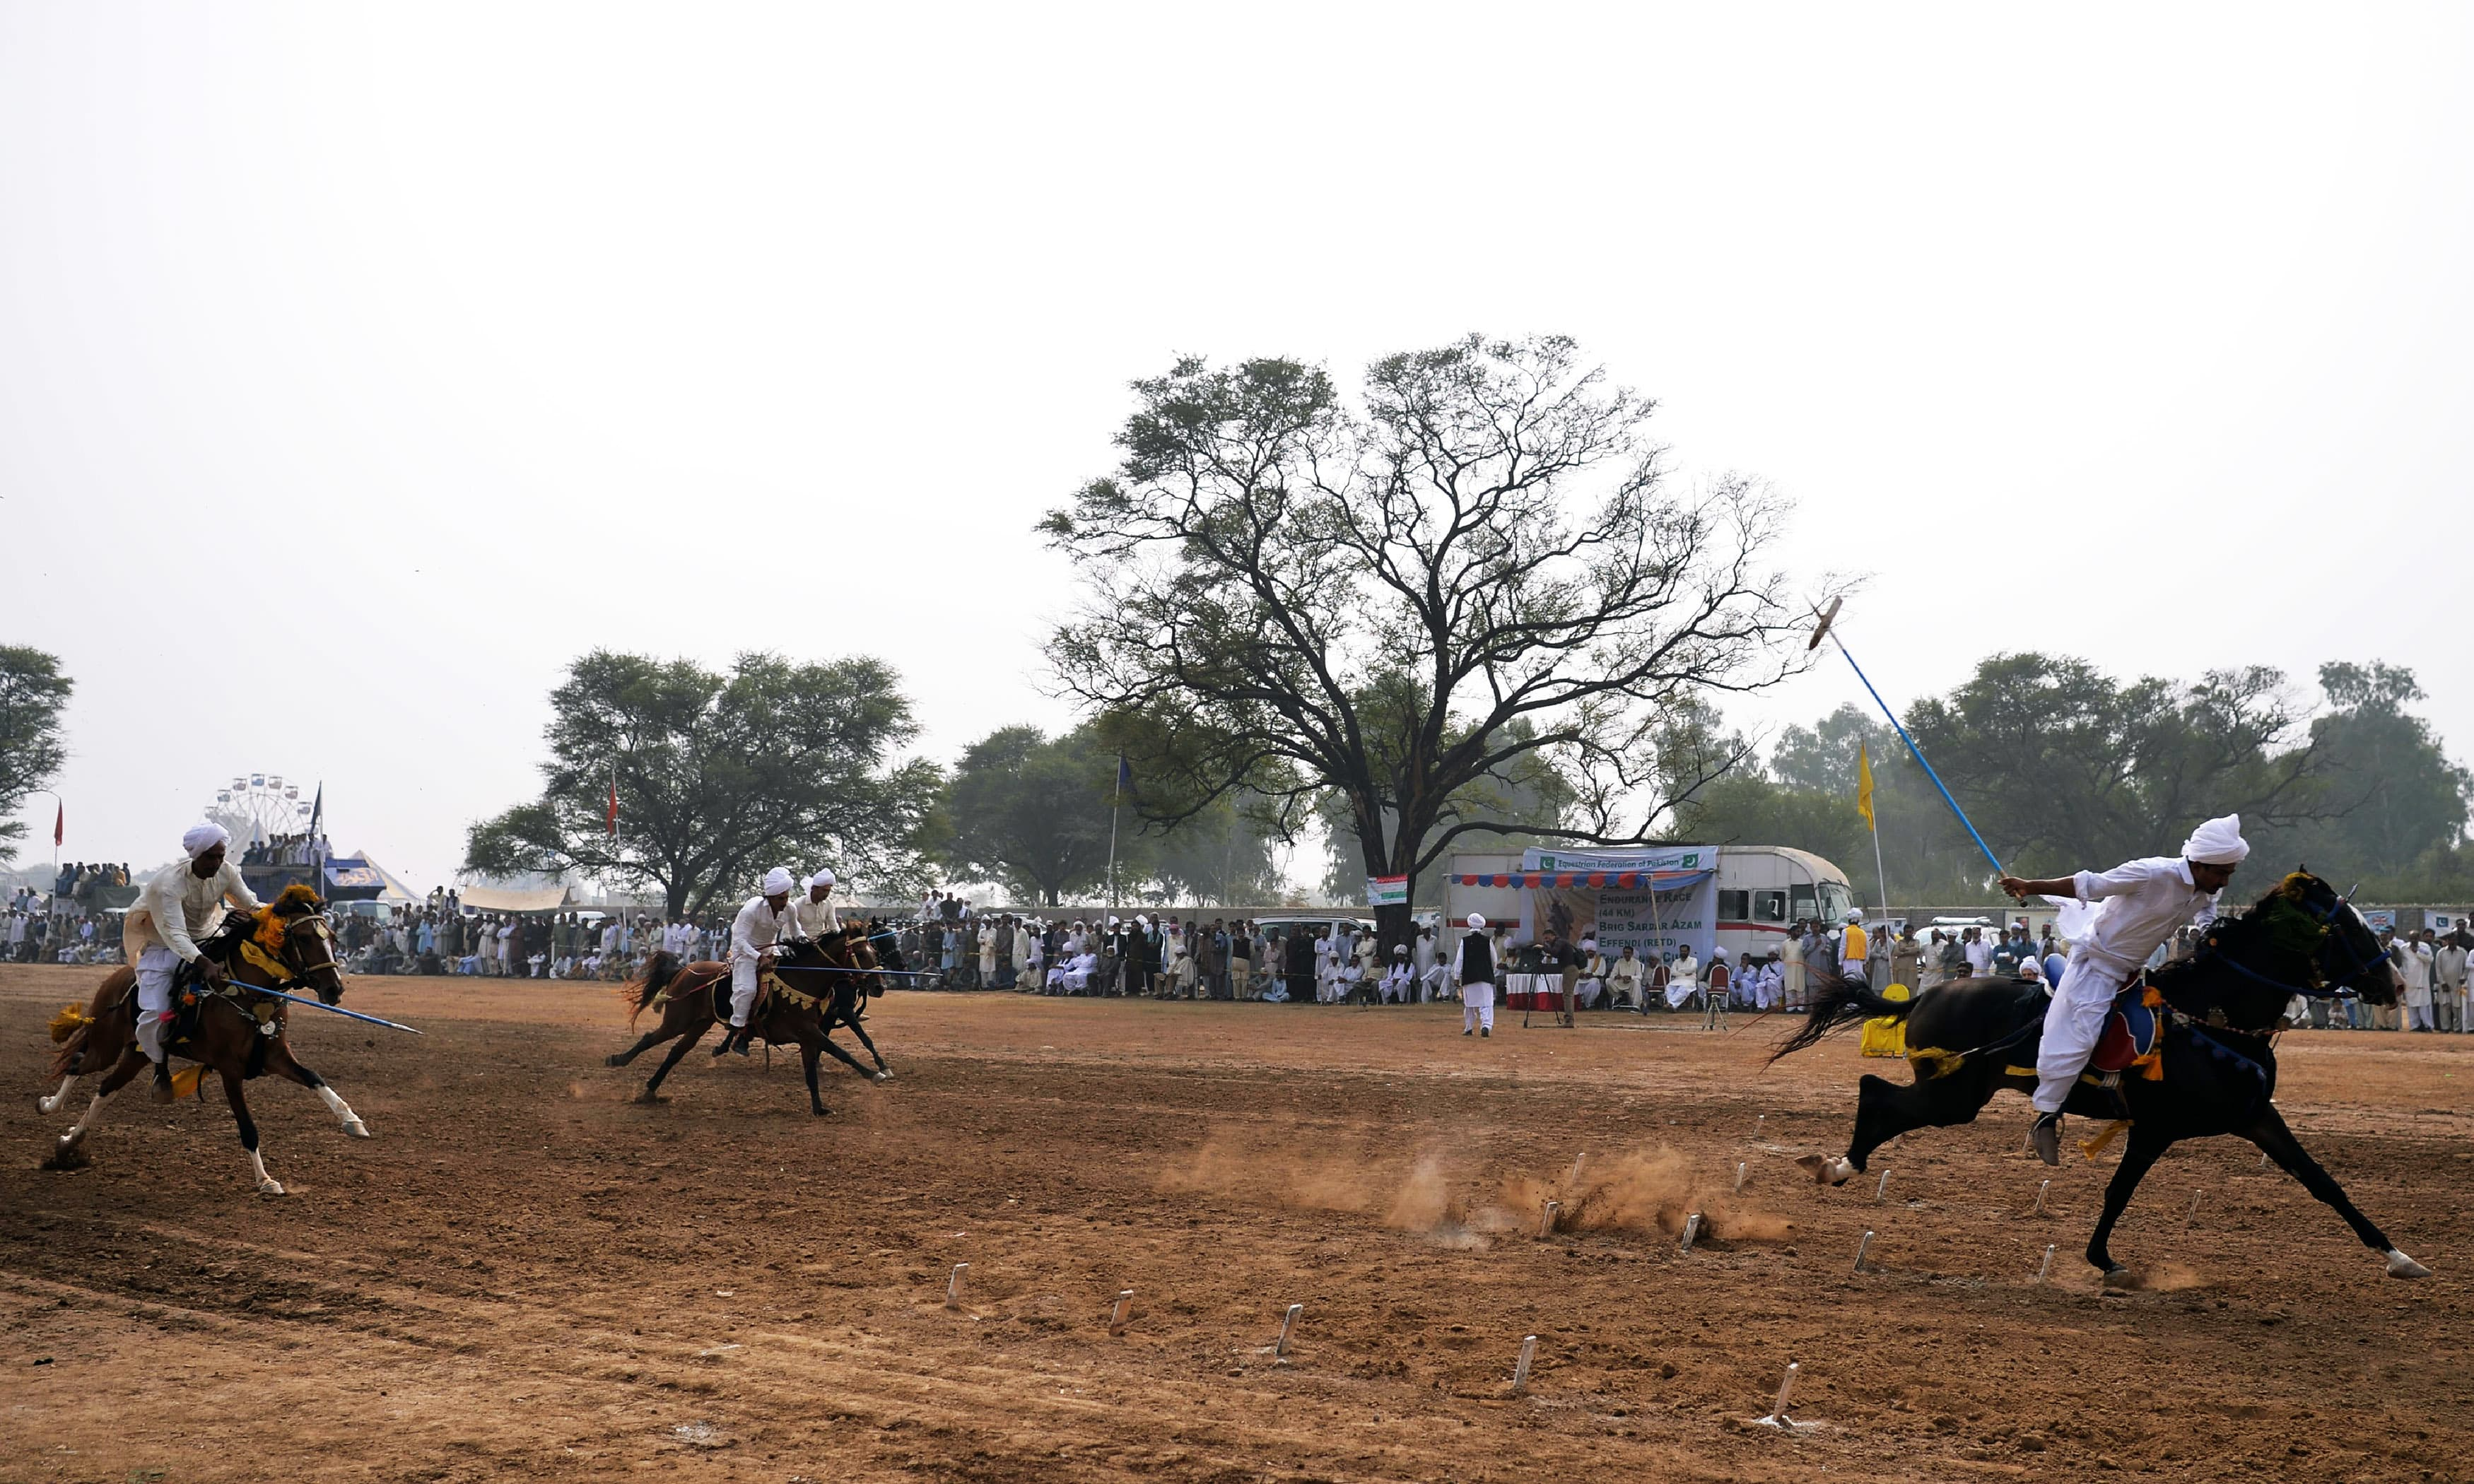 Riders charge across a course holding a lance to pick up pegs at a tent-pegging competition. —AFP